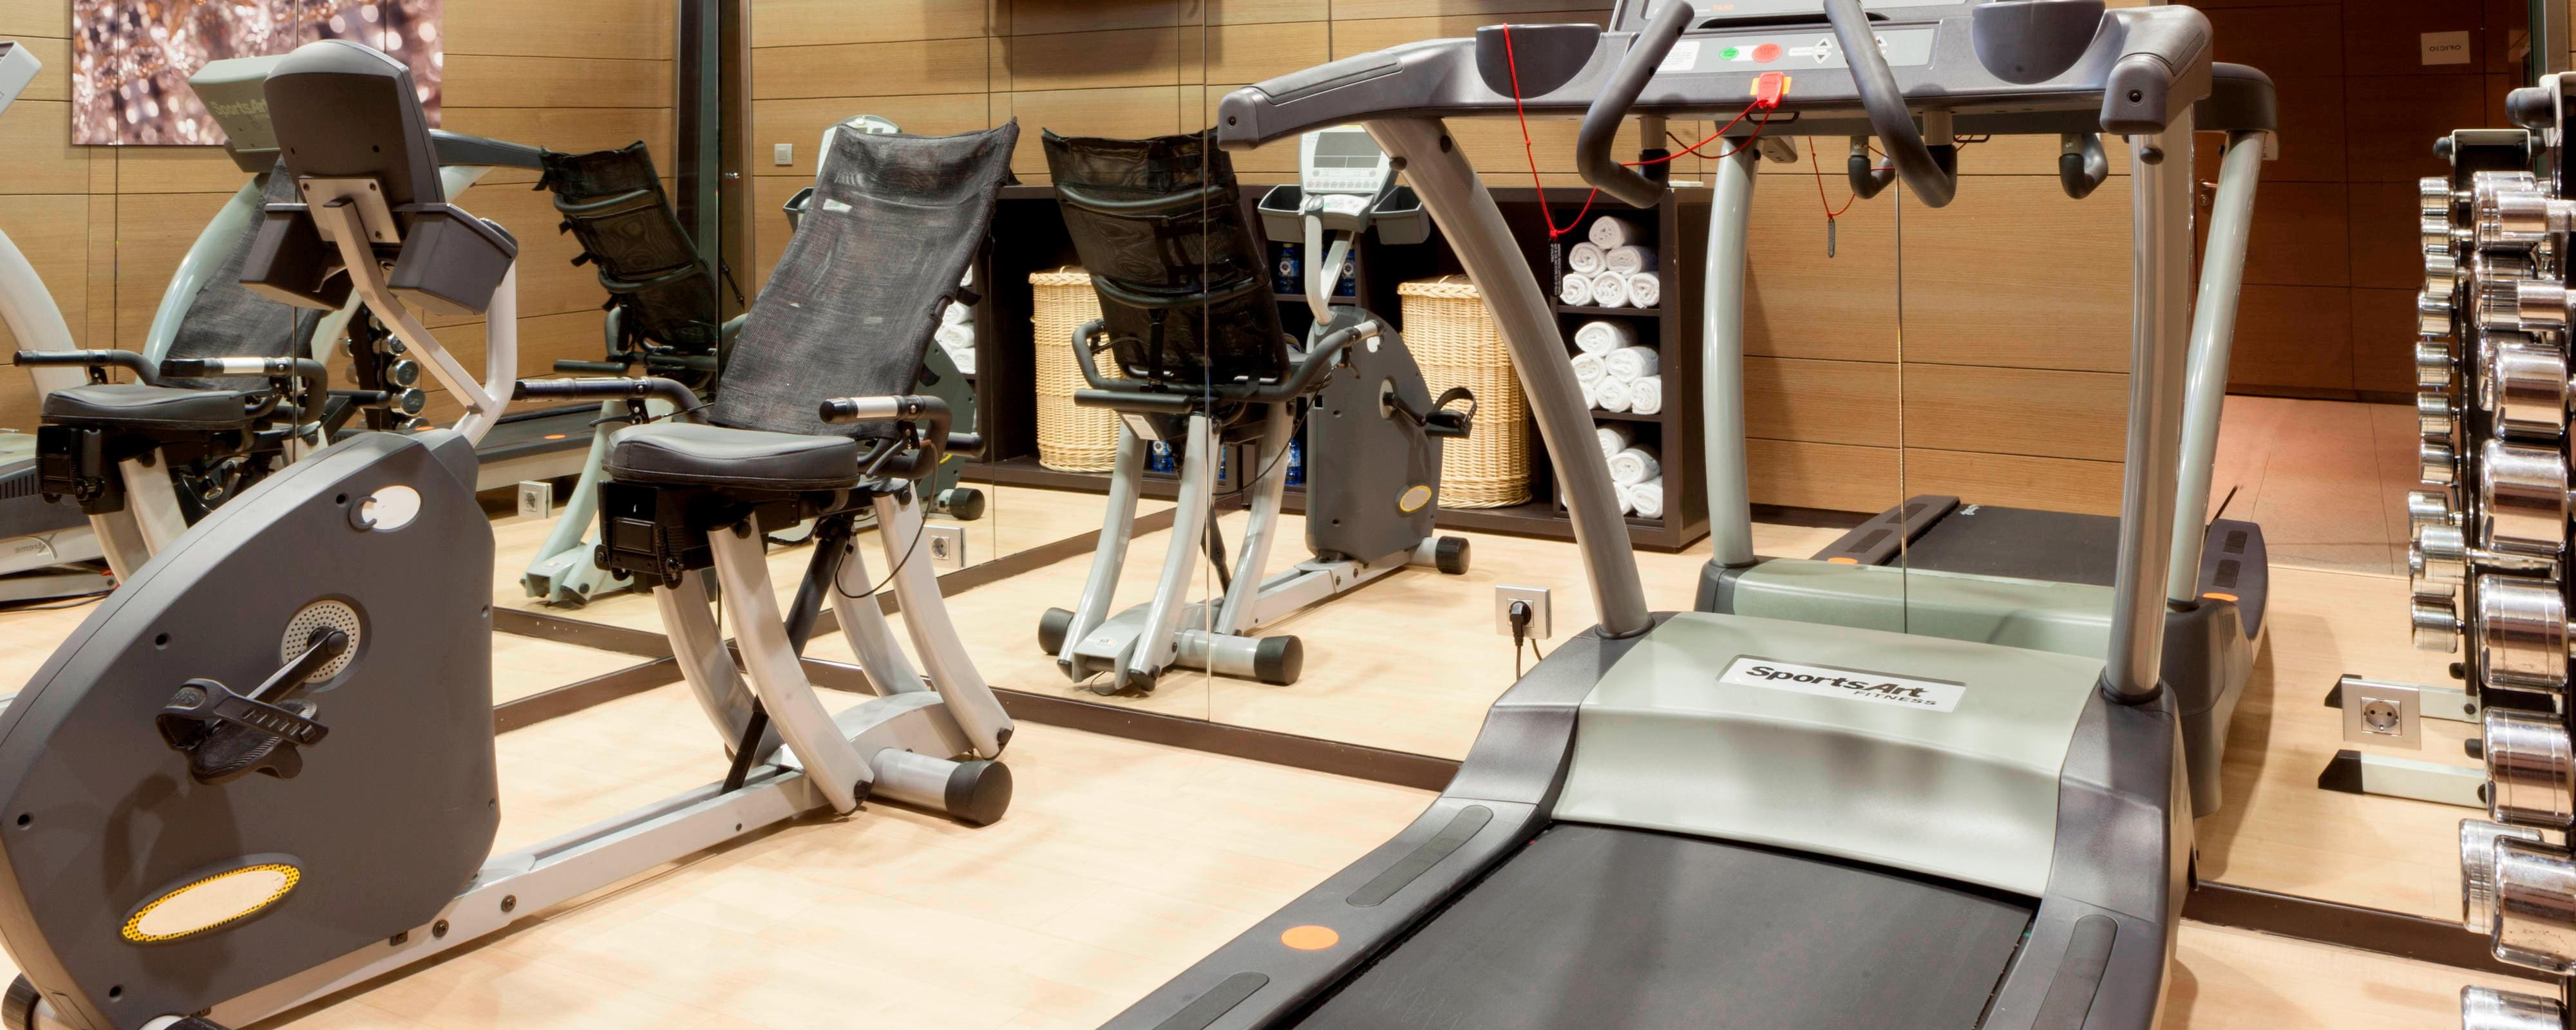 fitness center in seville hotel